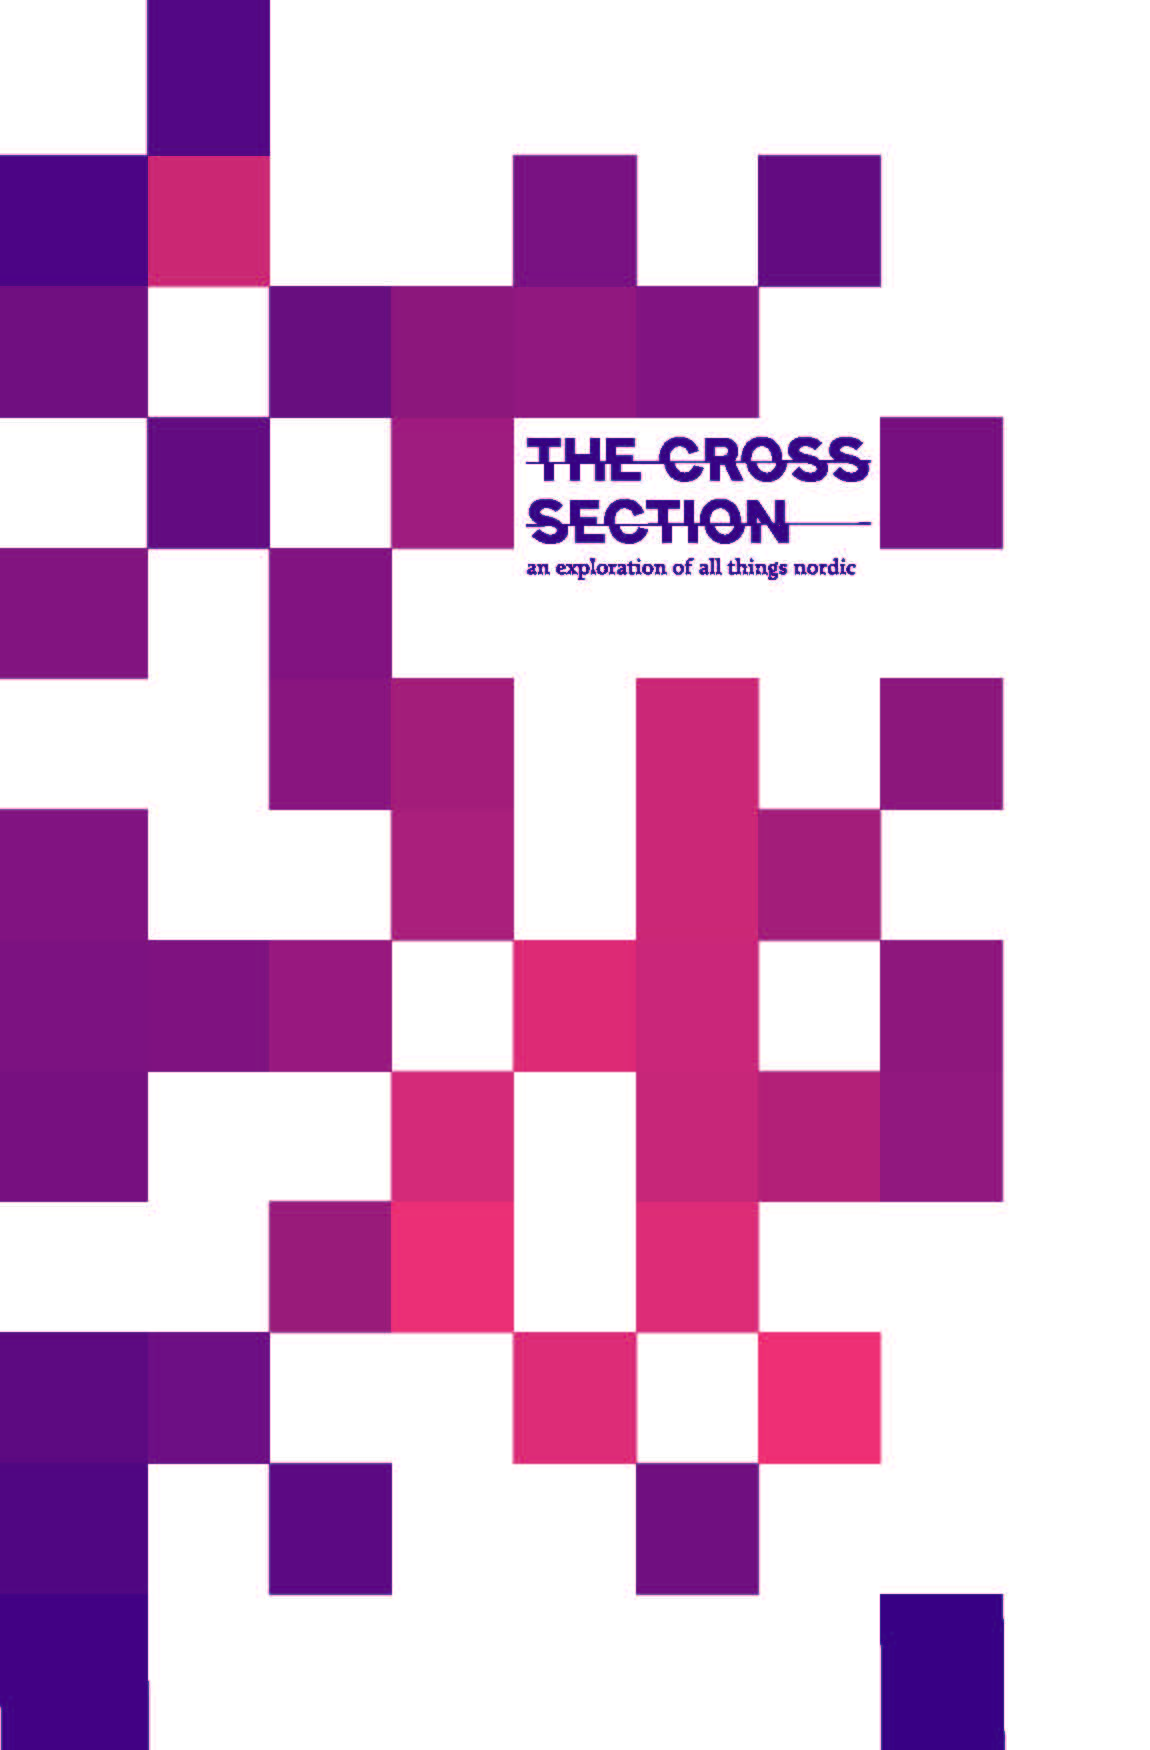 Front cover of Issue 2 of The Cross Section